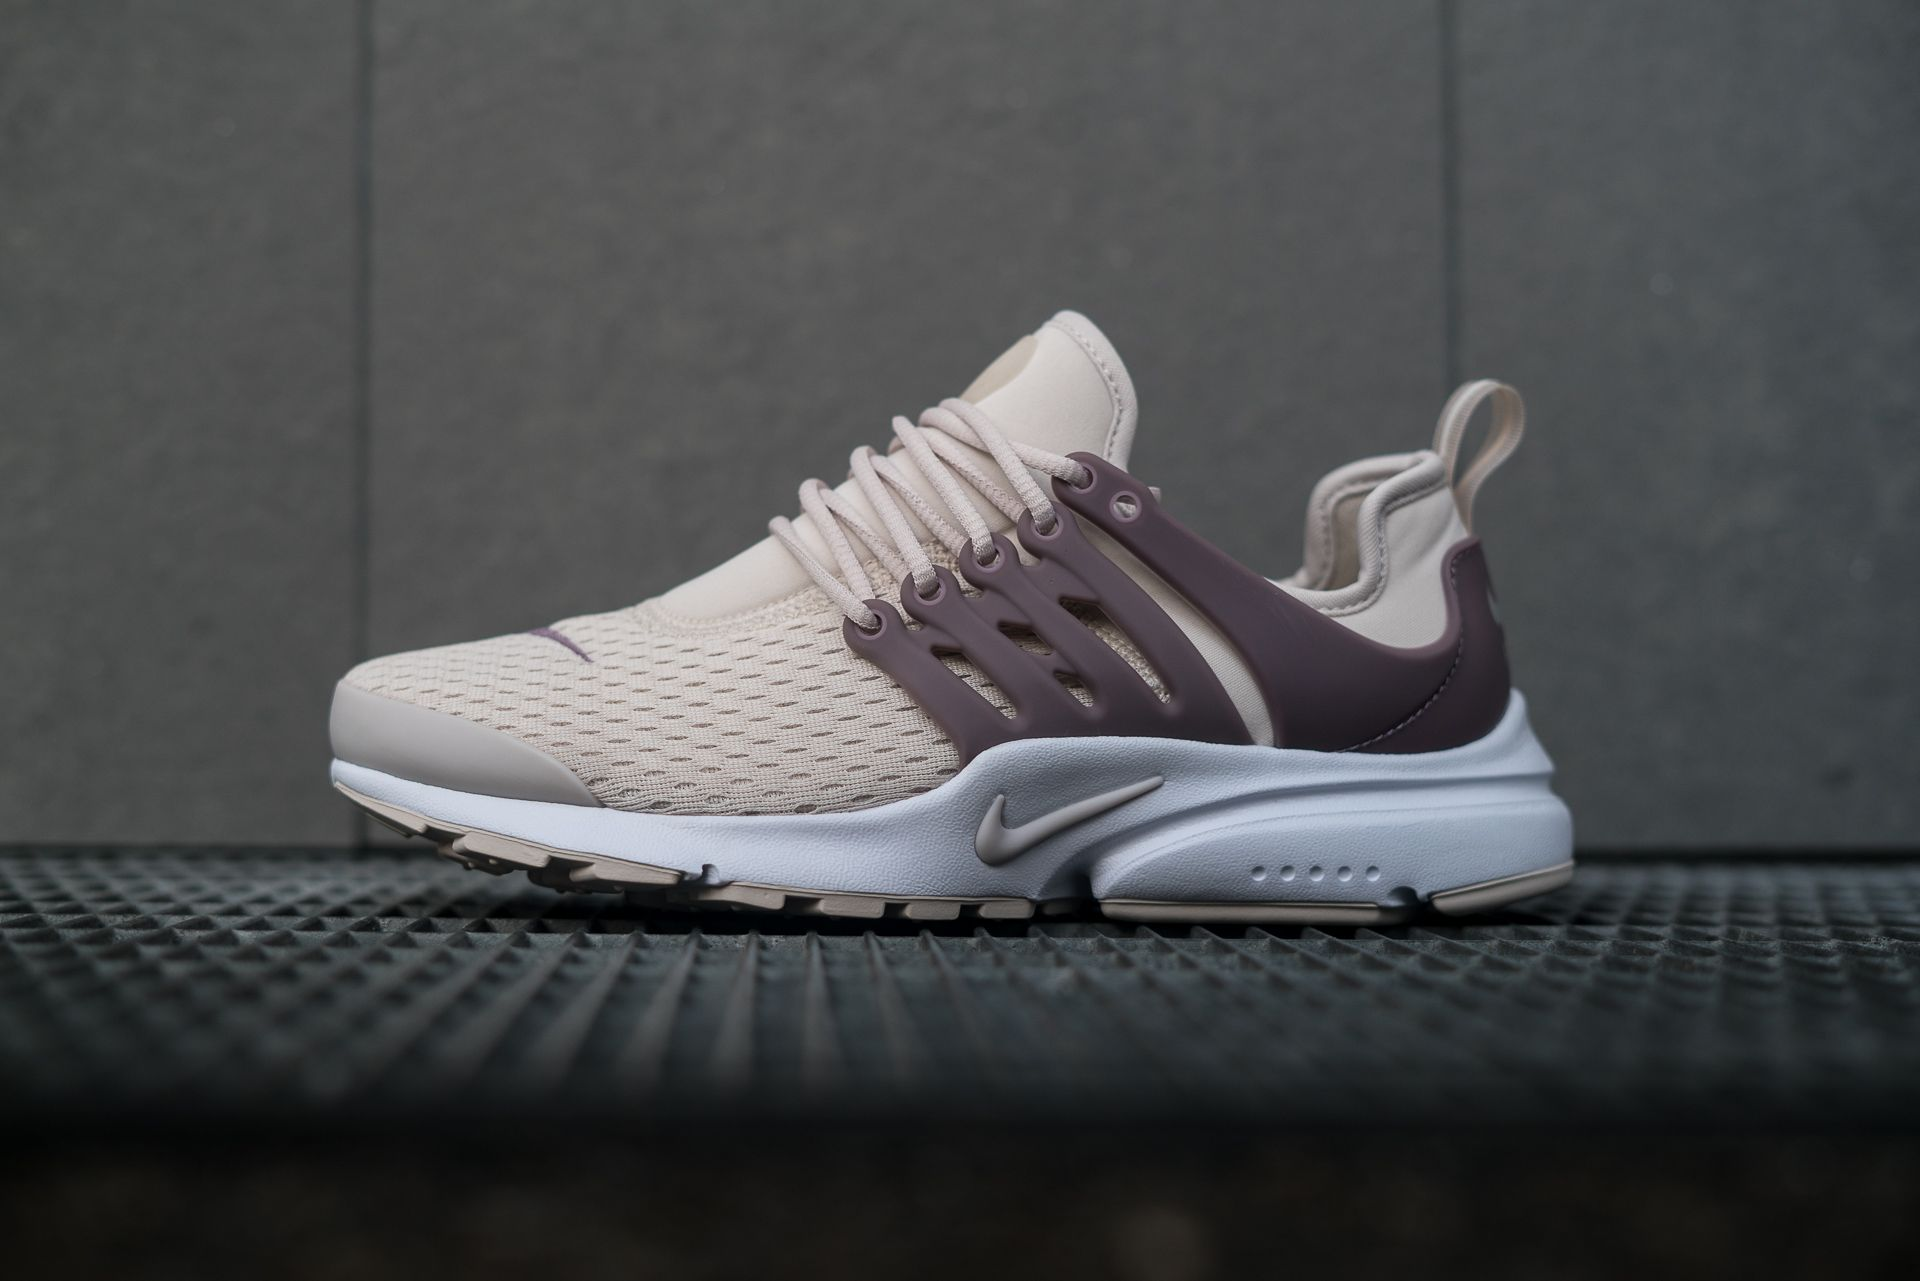 Nike W Air Presto Light Orewood Brown. The classic is back!